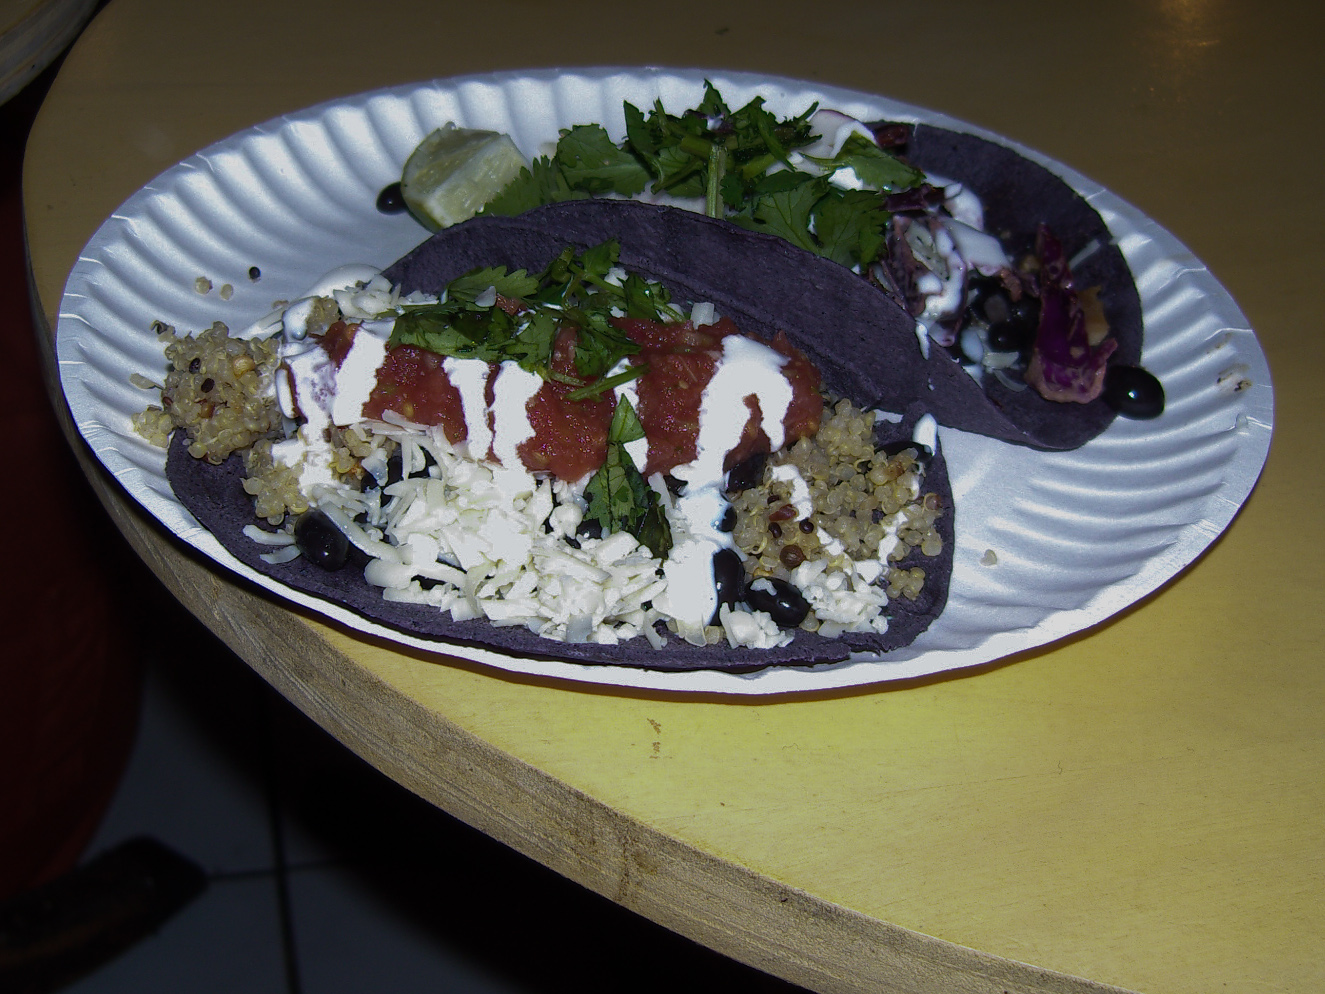 Blue corn tacos from Snack Dragon in New York City. Photo by alphacityguides.